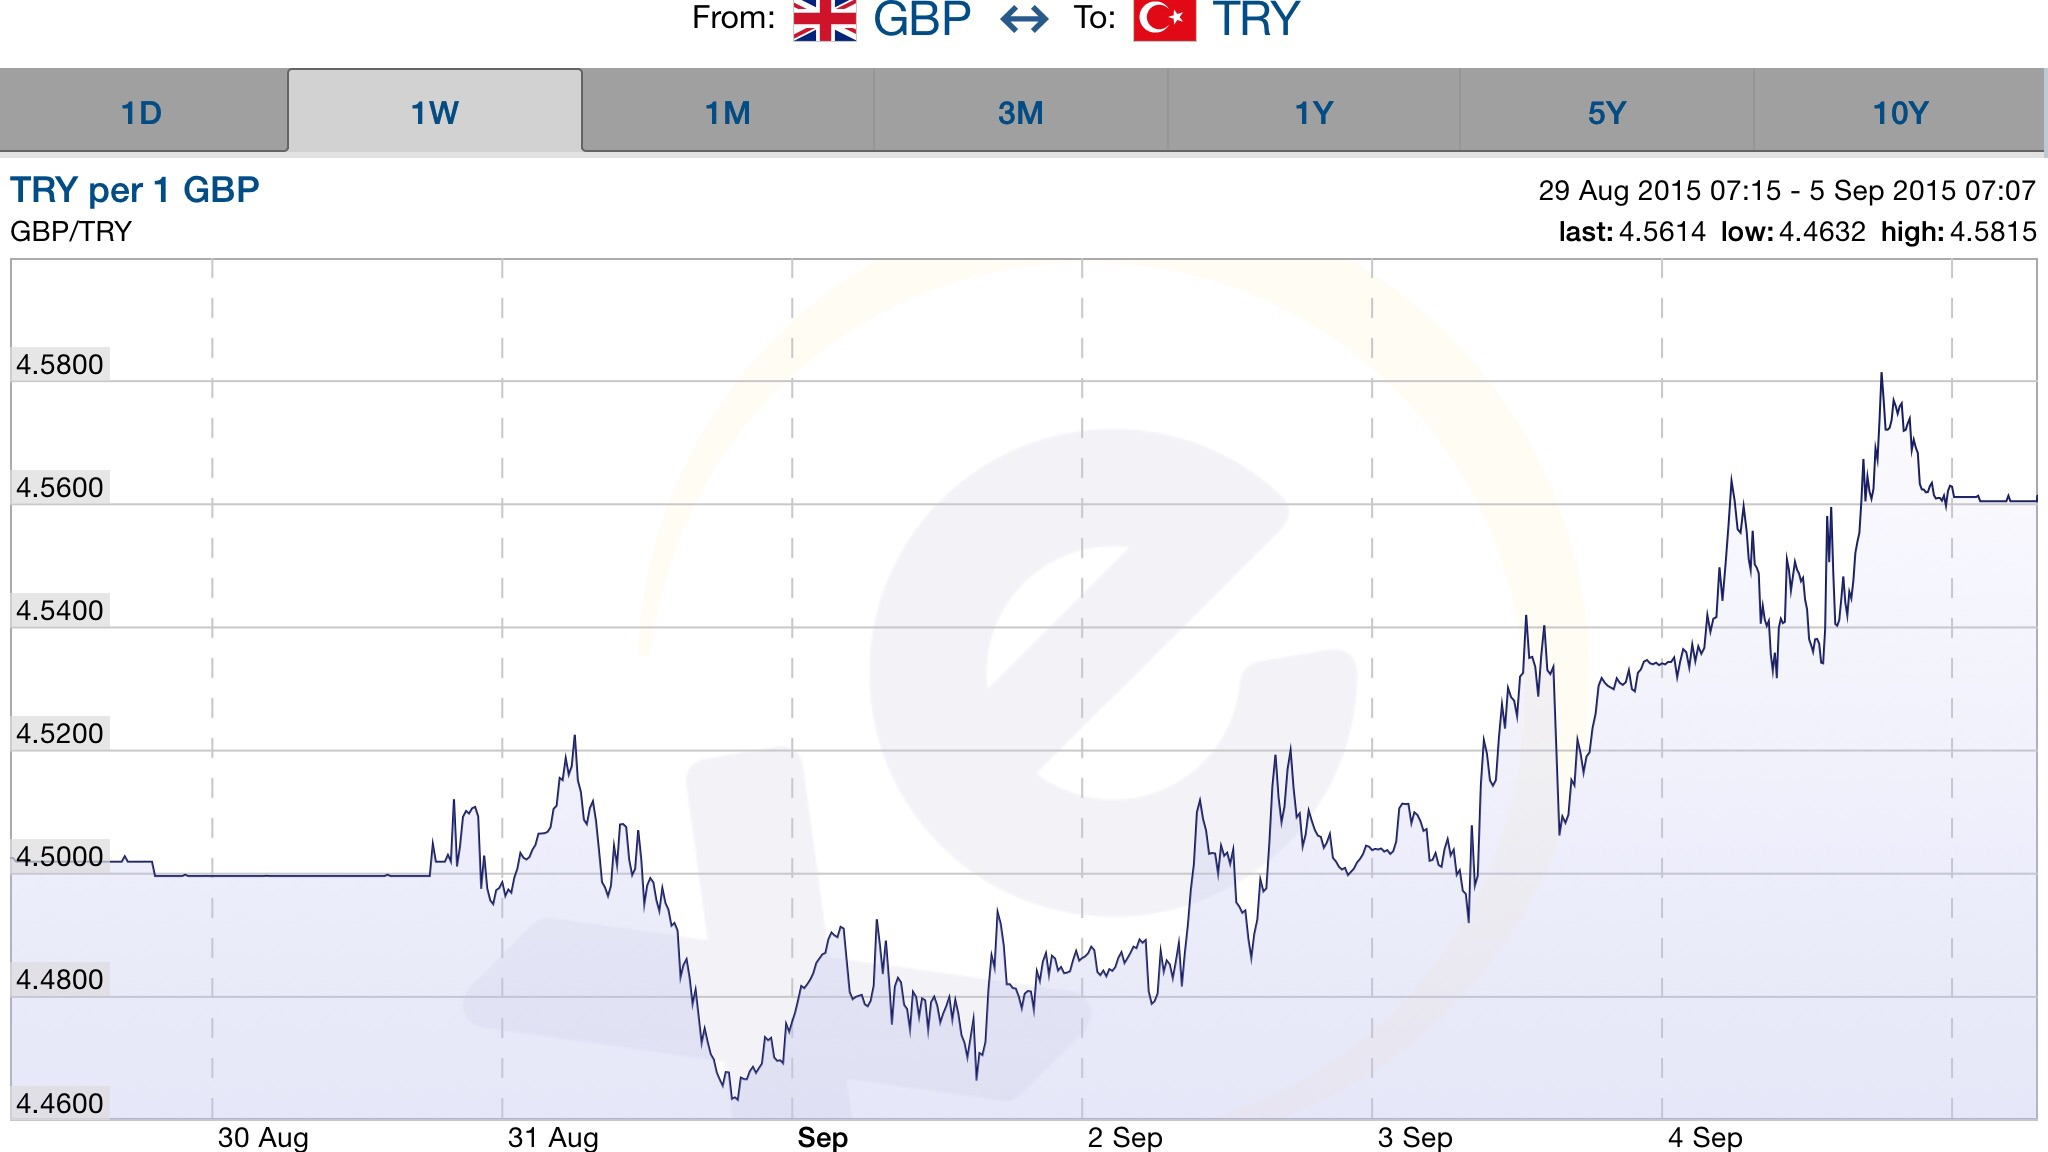 Turkish lira w e 5 September 2015